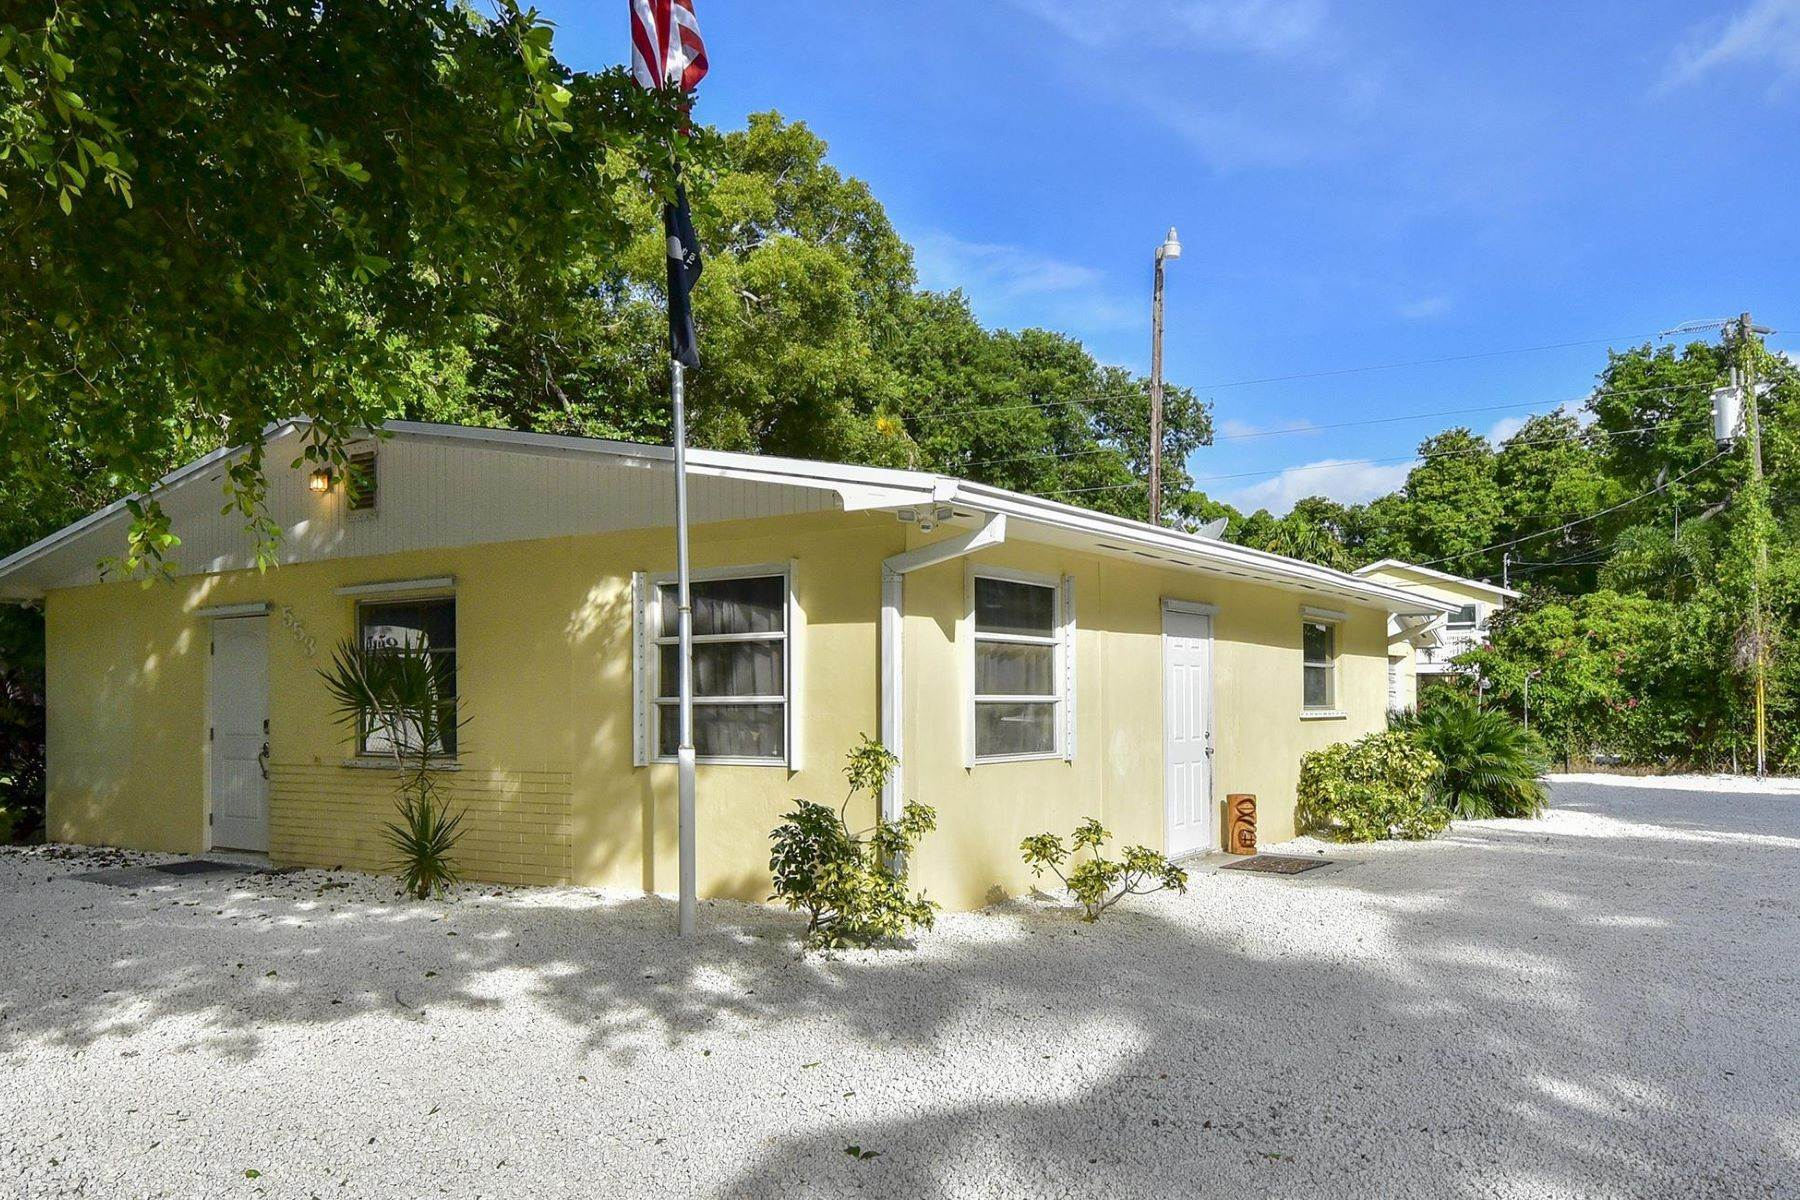 Single Family Homes for Sale at 553 Palm Drive, Key Largo, FL 553 Palm Drive Key Largo, Florida 33037 United States